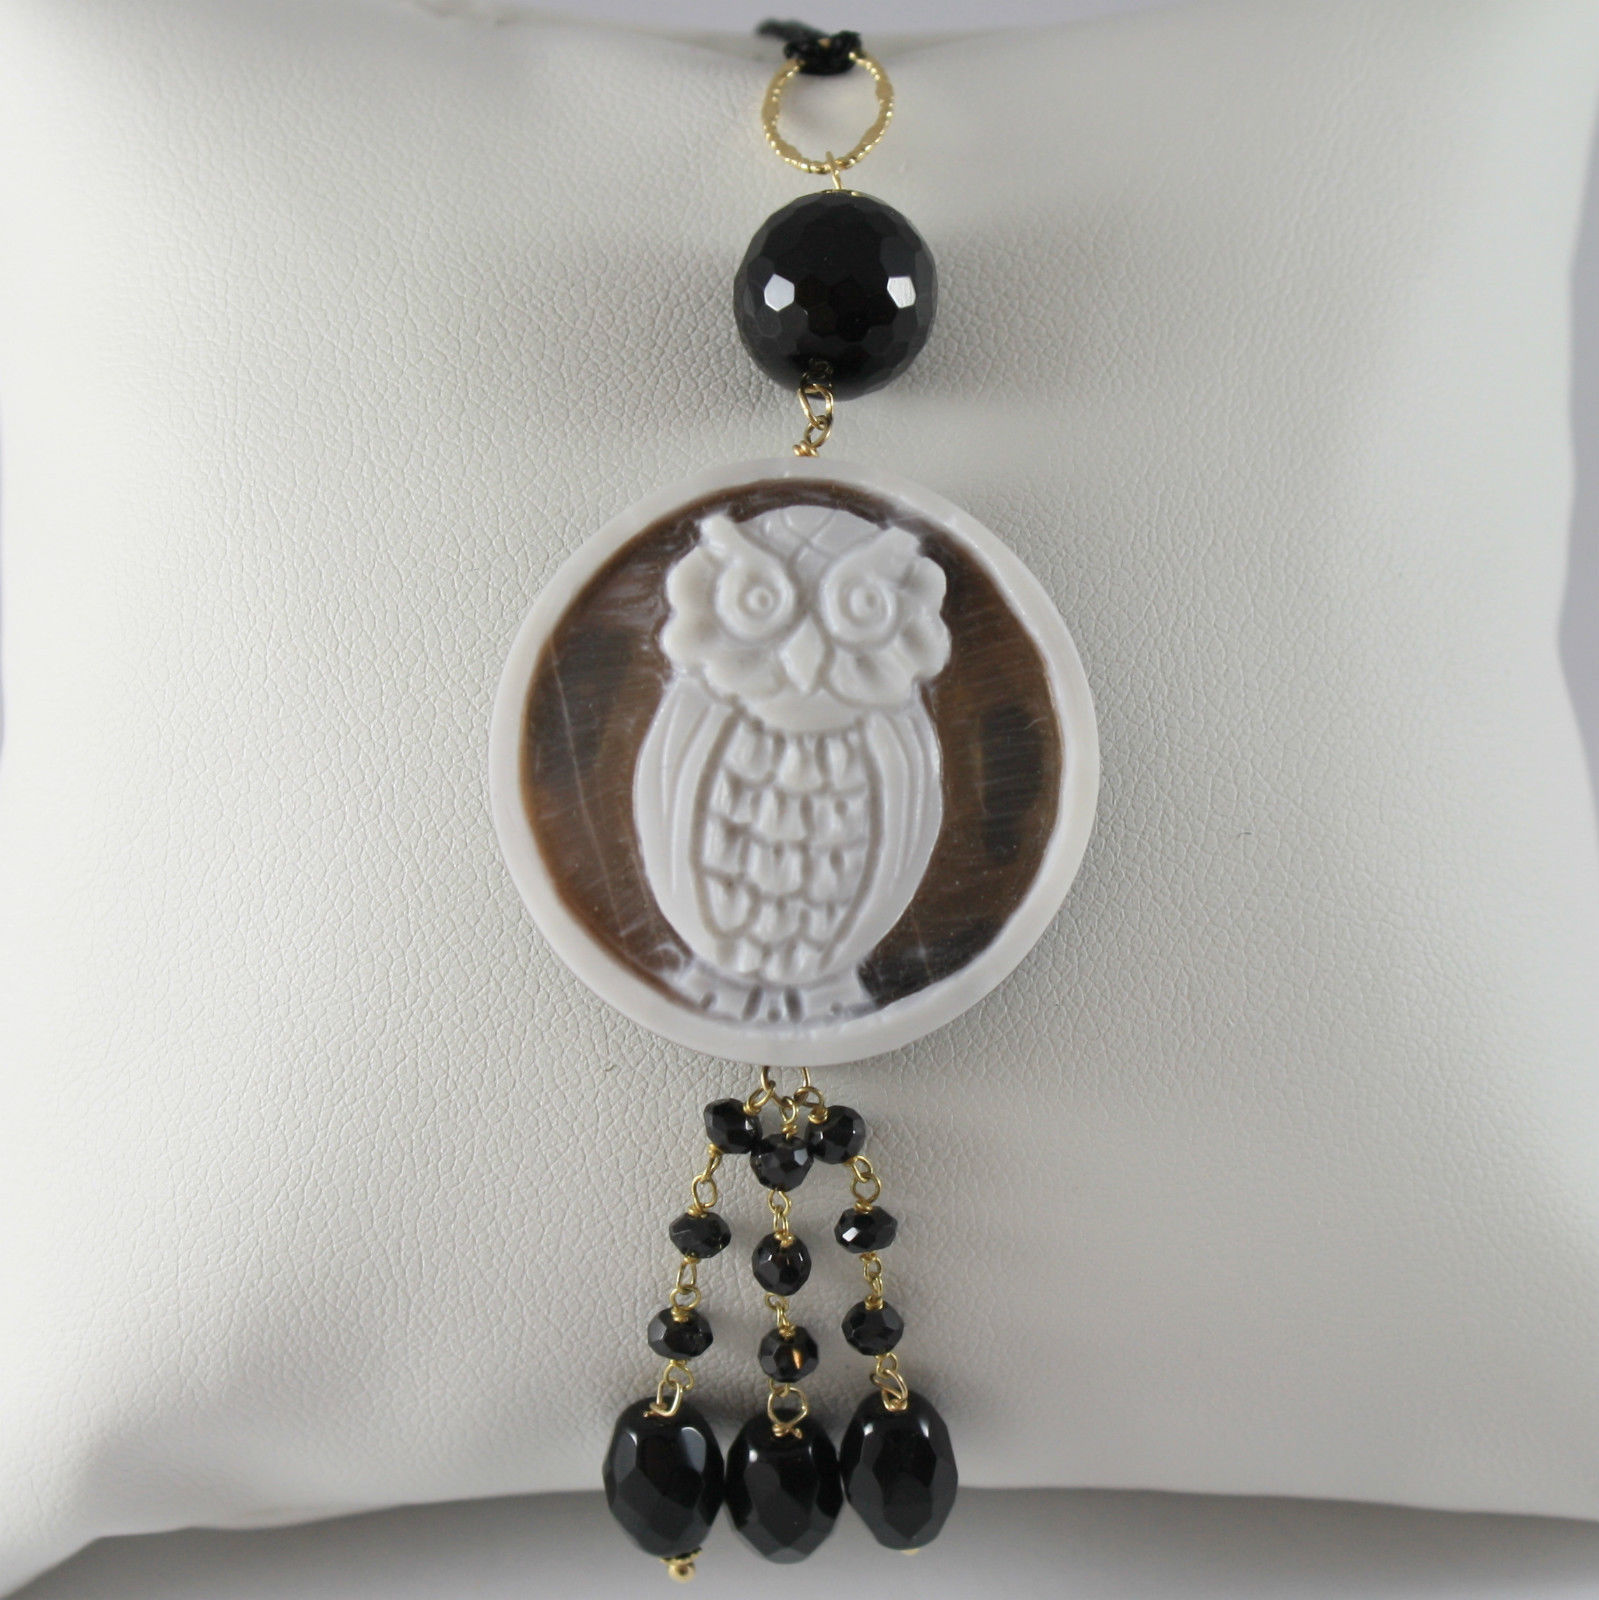 SOLID 18K YELLOW GOLD OWL PENDANT, ONYX AND MOTHER OF PEARL, MADE IN ITALY